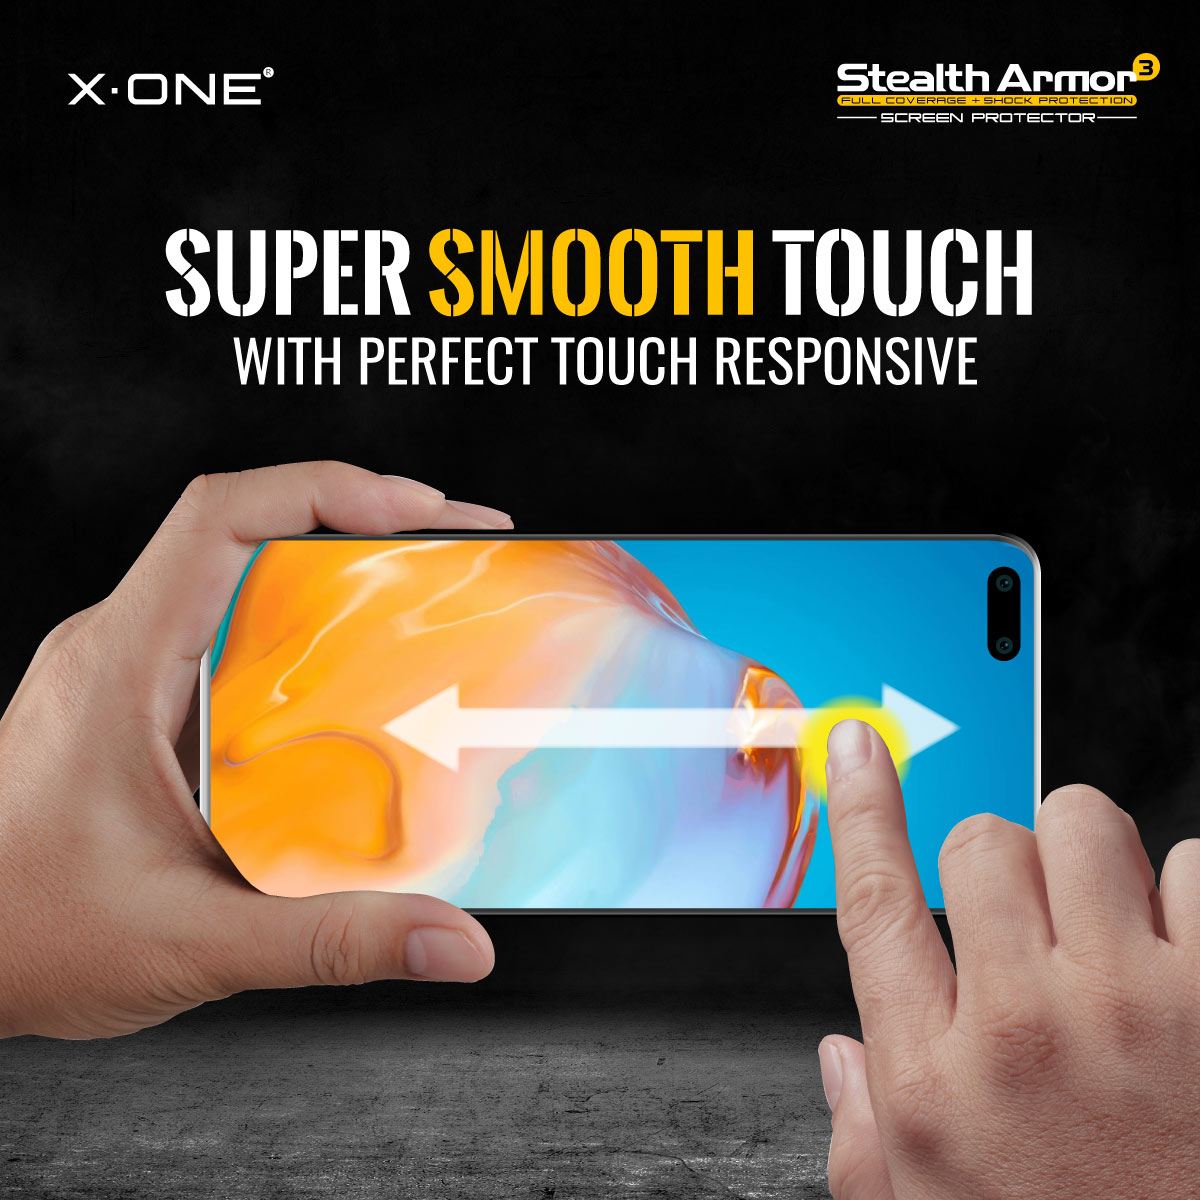 Samsung S20 FE X-One Stealth Armor 3 Clear / Matte Screen Protector